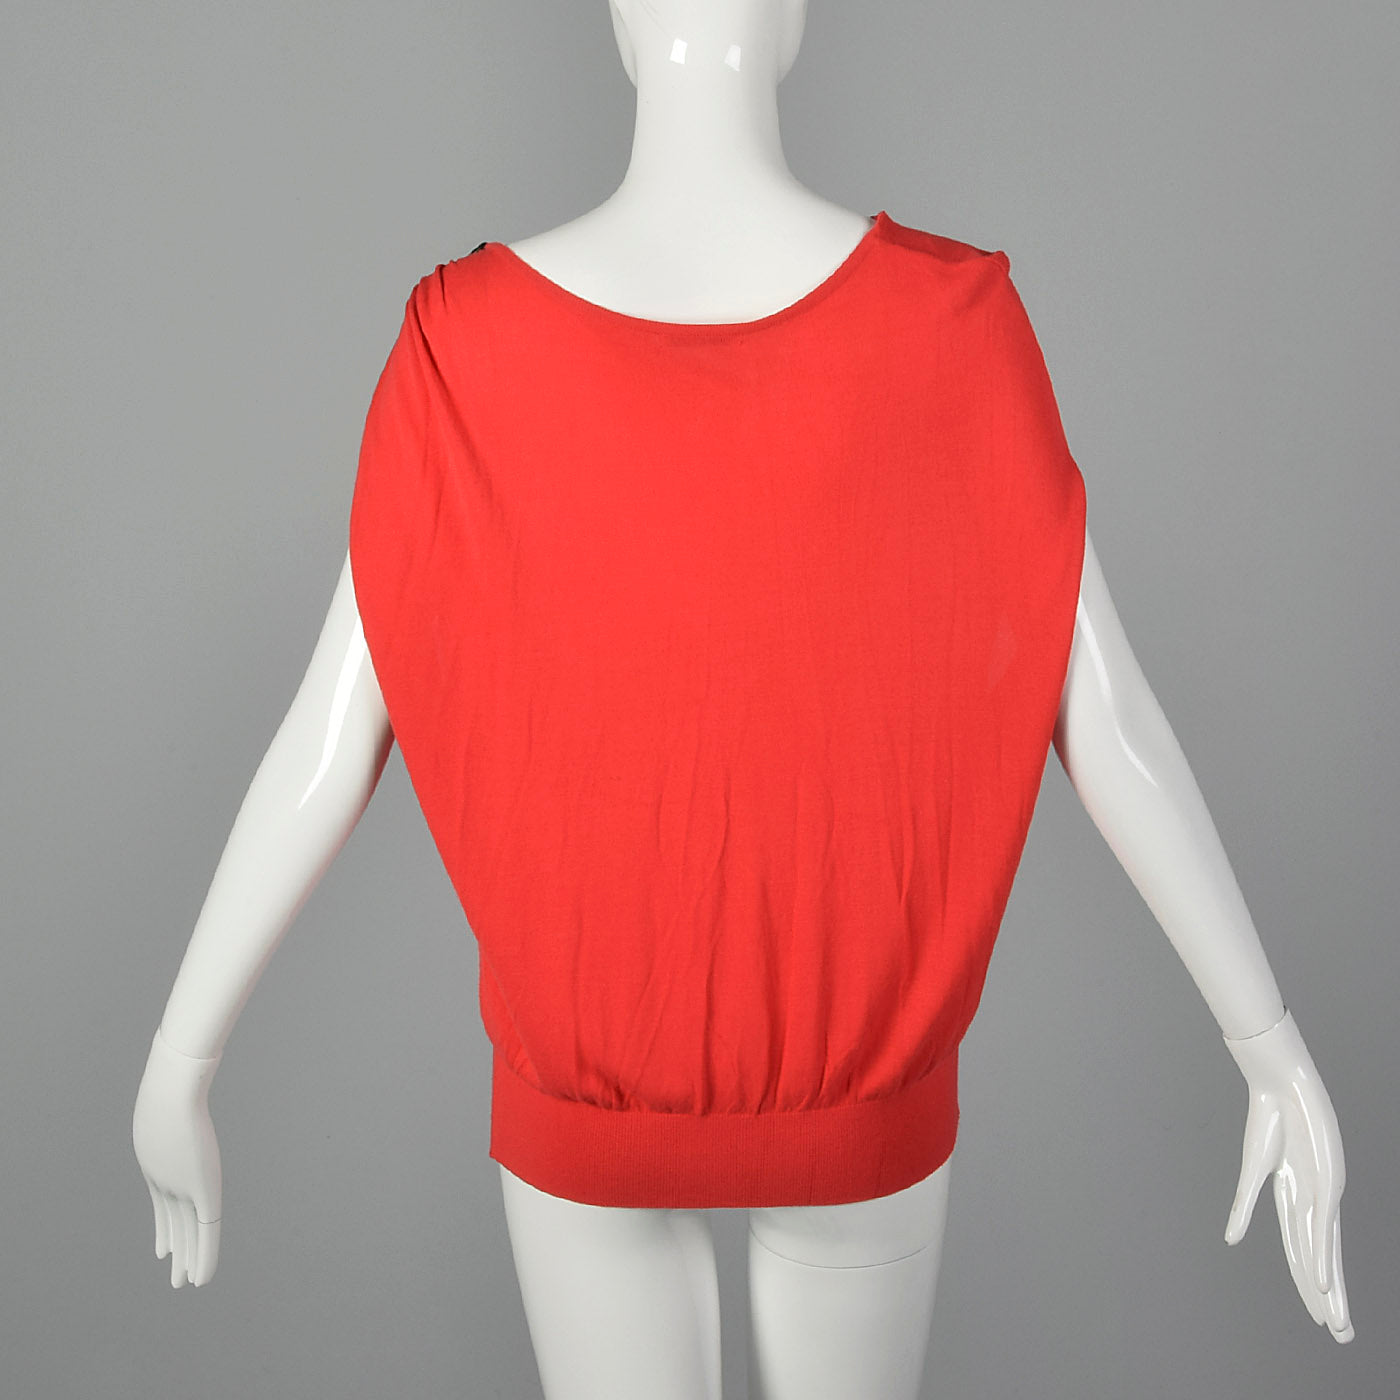 2000s Red Knit Top